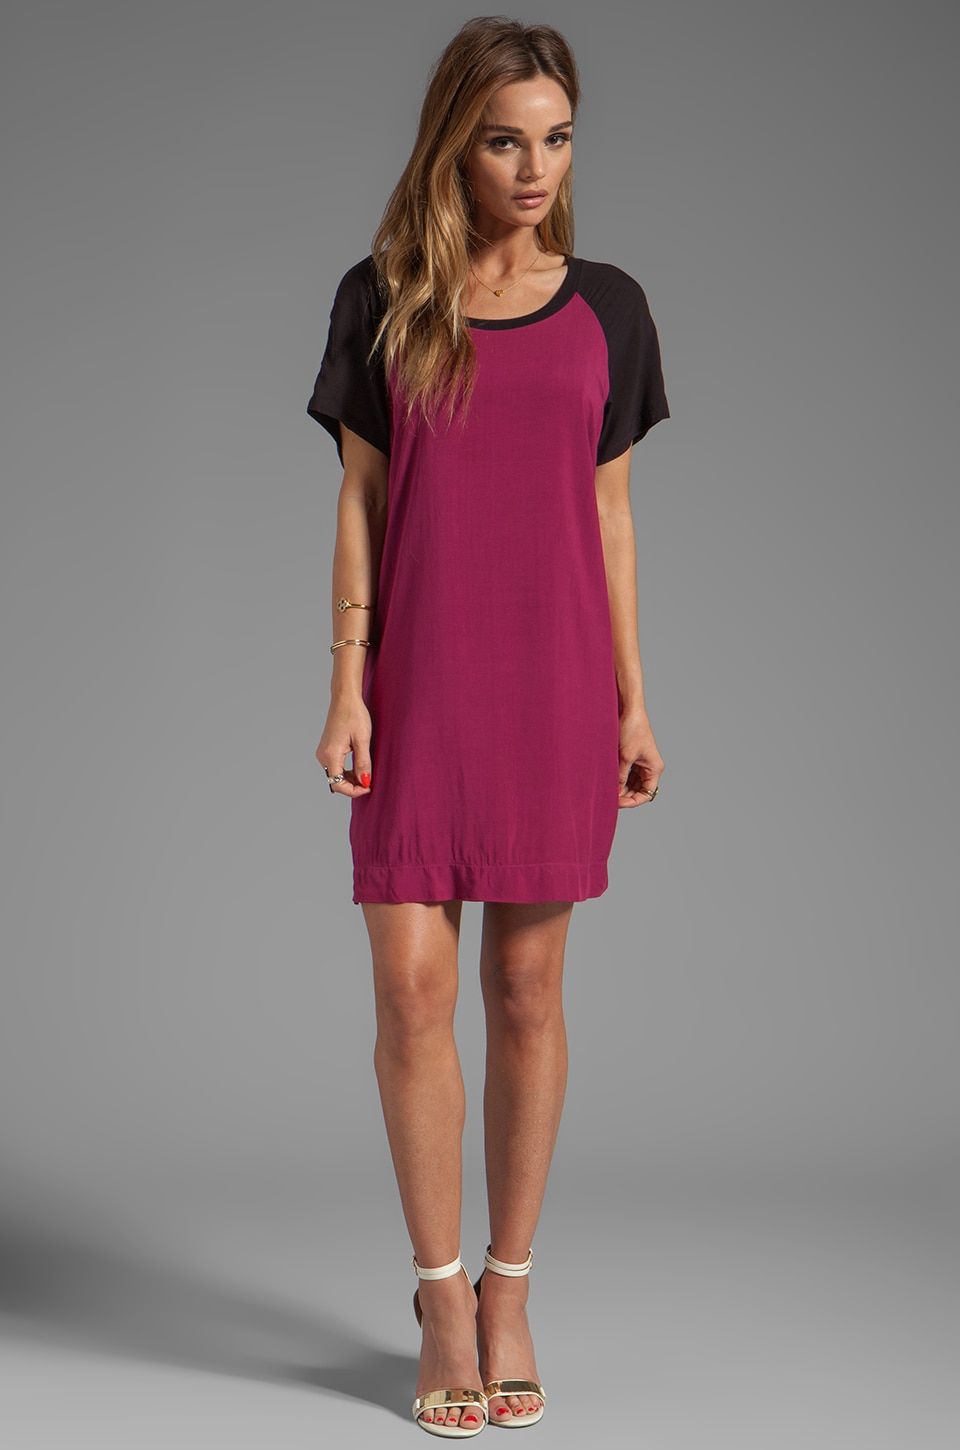 Splendid Color Blocking Dress in Sangria